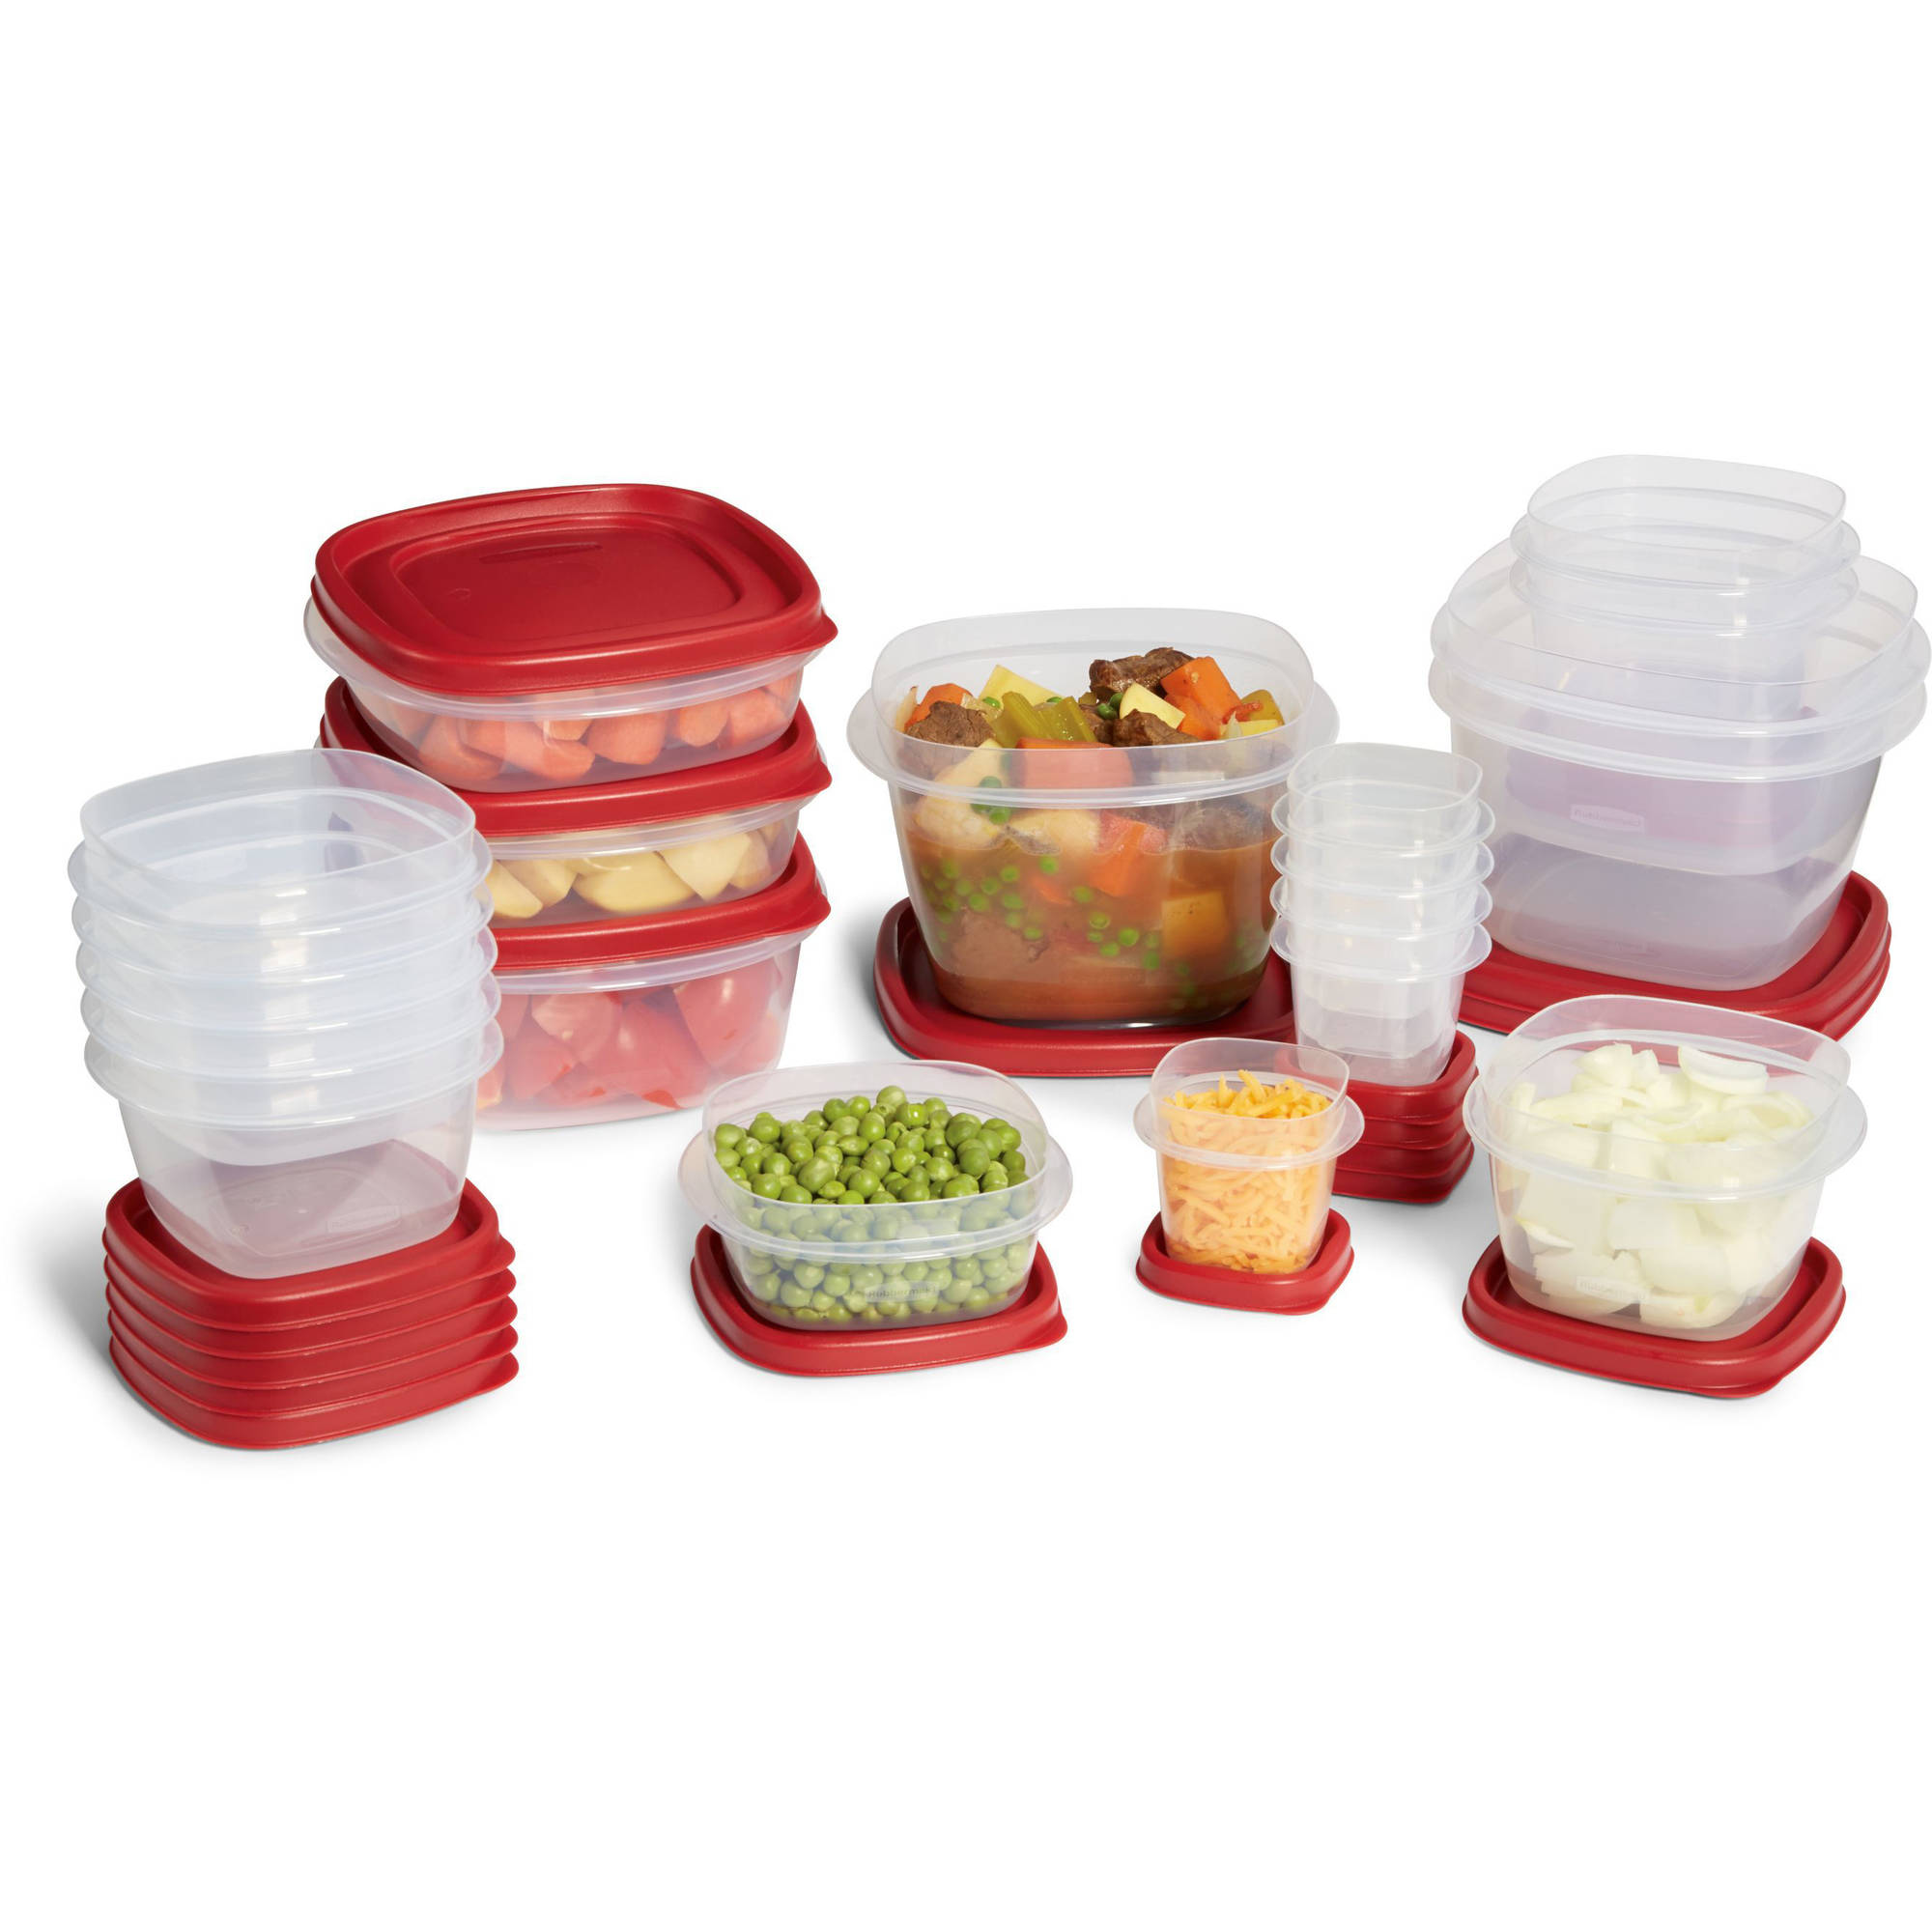 Rubbermaid Easy Find Lids Food Storage Container 40-Piece Set Red - Walmart.com  sc 1 st  Walmart.com & Rubbermaid Easy Find Lids Food Storage Container 40-Piece Set Red ...